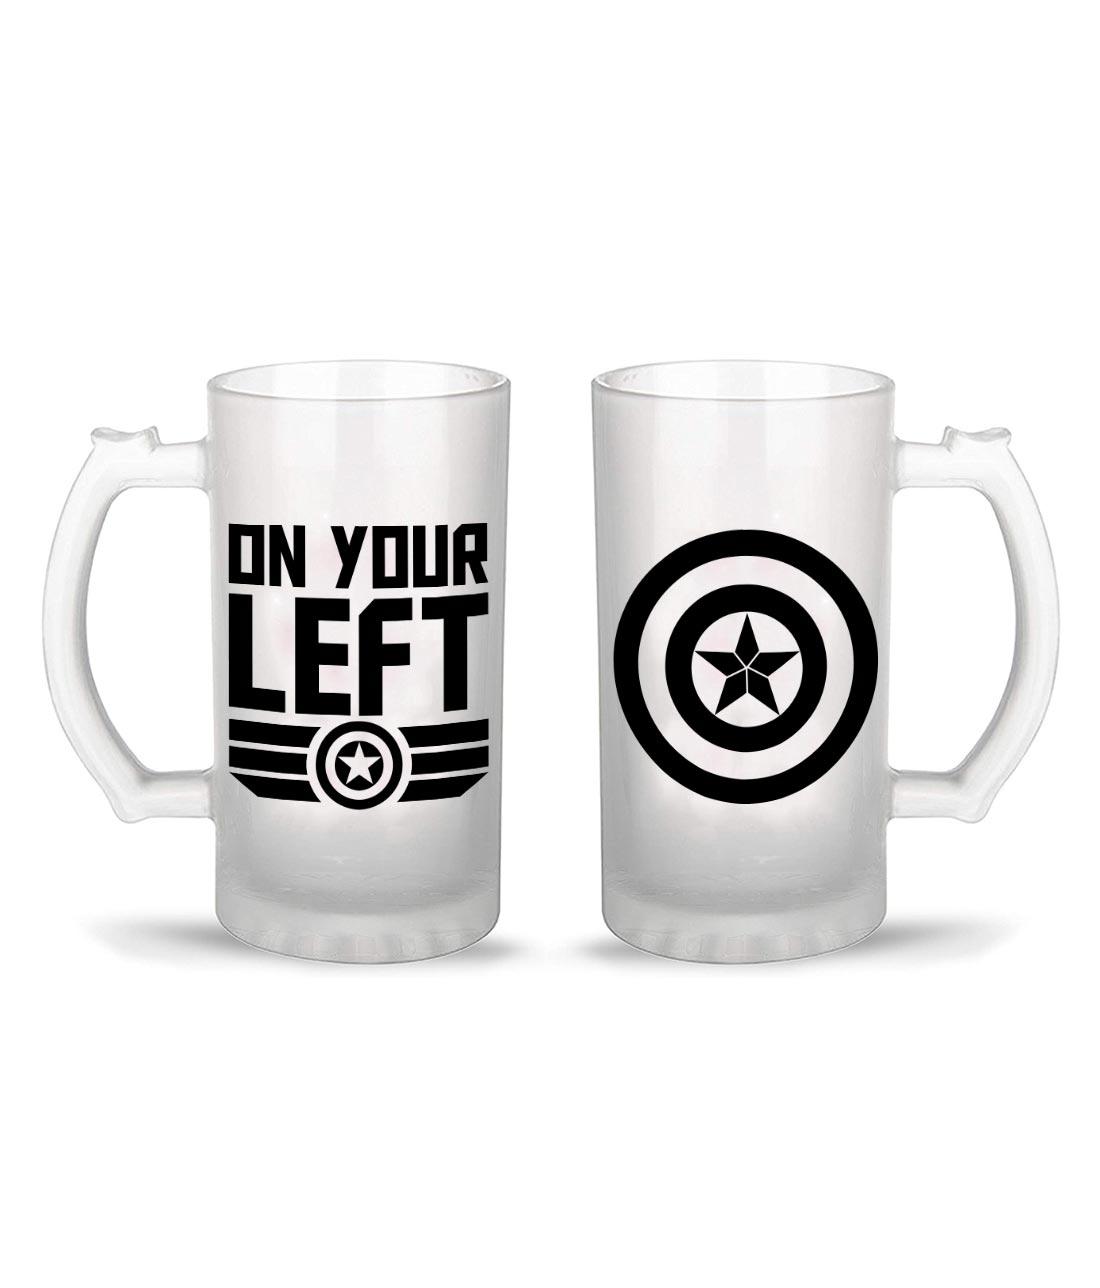 On your left - Party Mugs